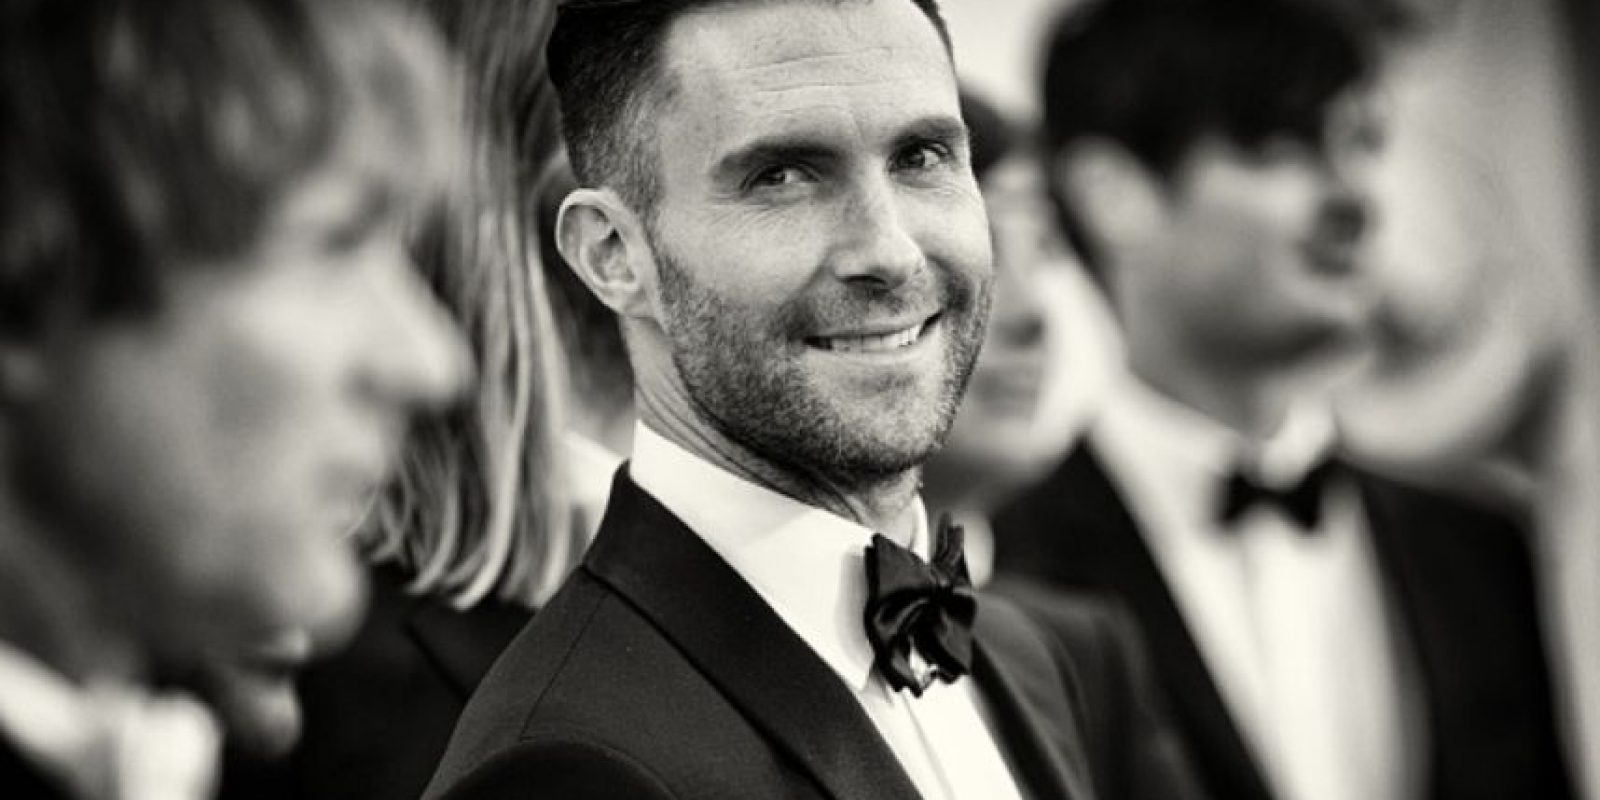 10. Adam Levine Foto: Getty Images